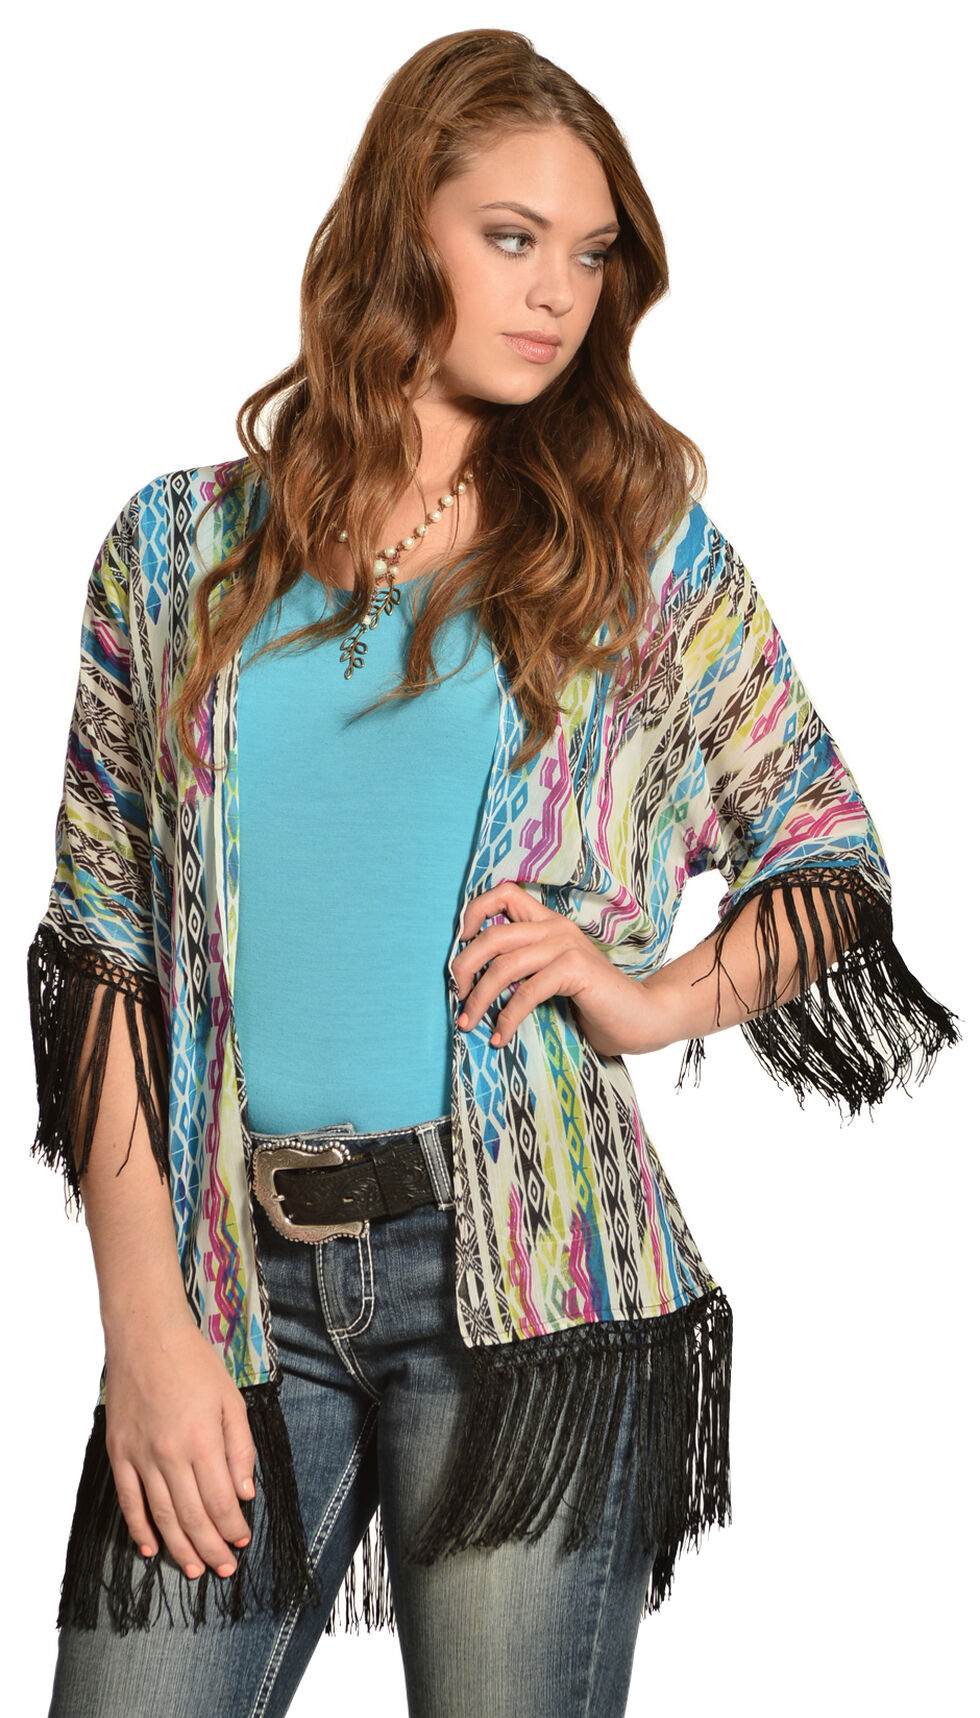 Wrangler Rock 47 Women's Multicolor Tribal Fringe Kimono Cardigan, White, hi-res